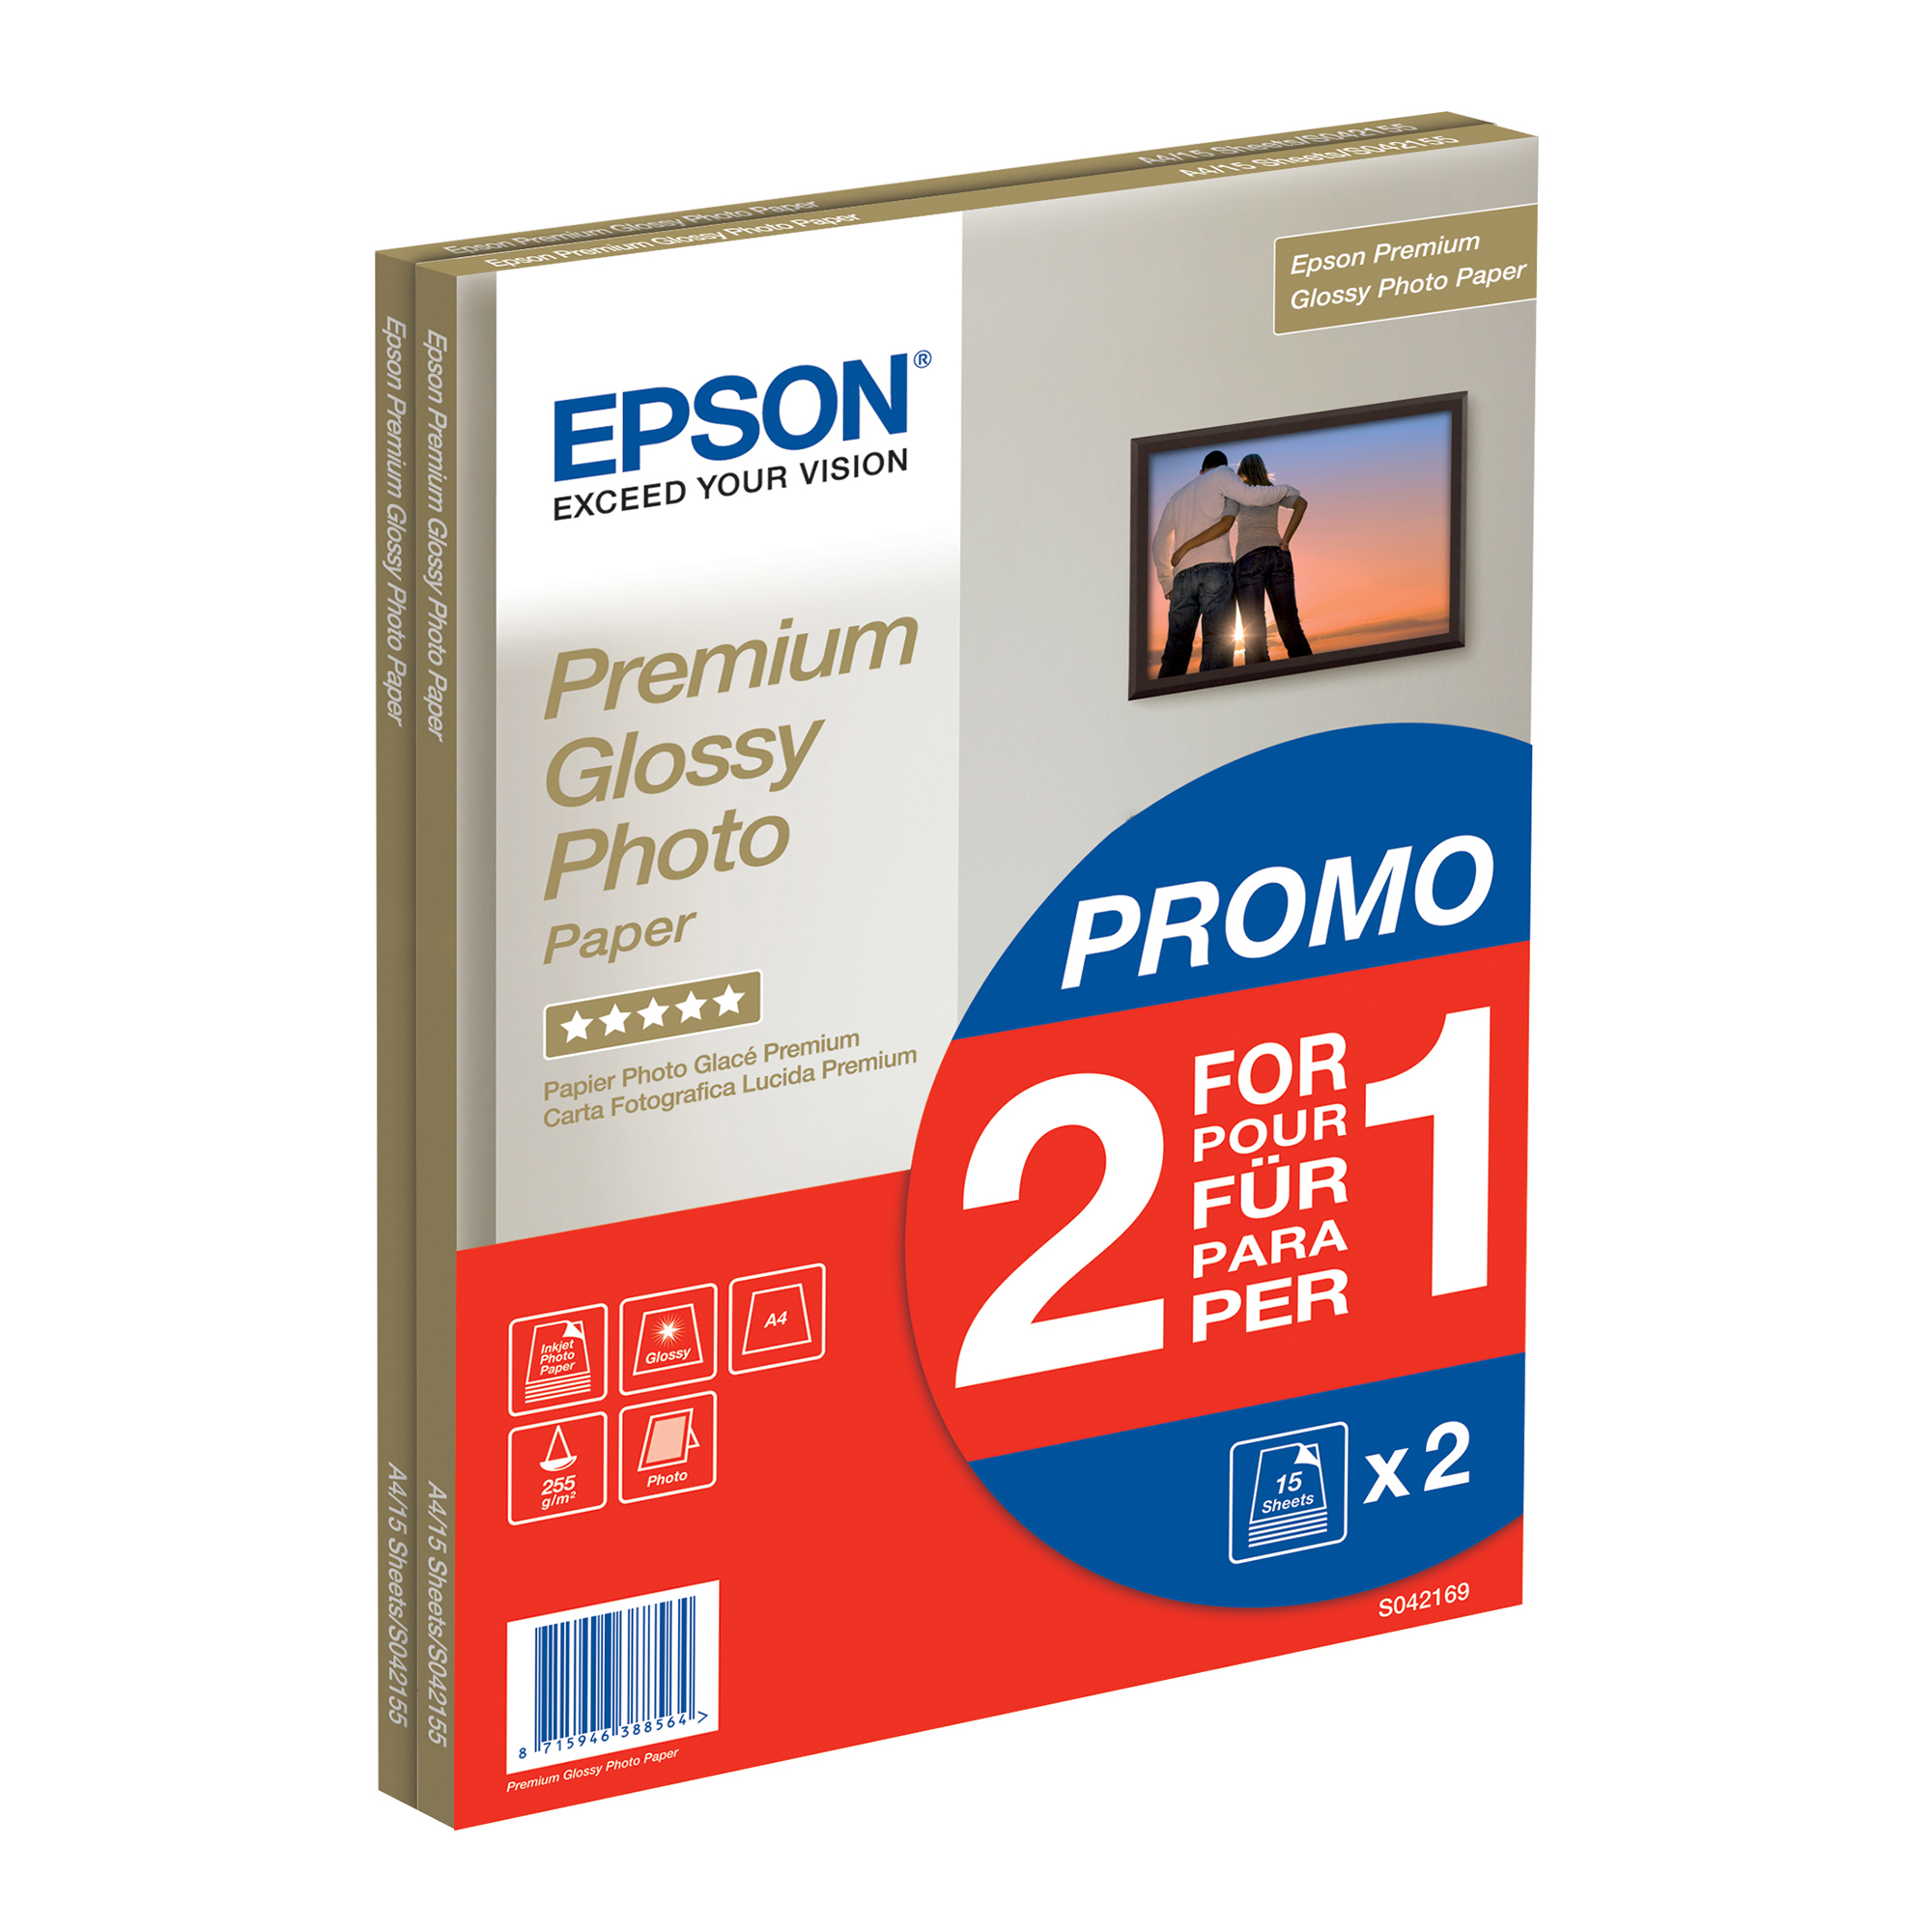 Photo Paper Bundle Epson A4 Premium Glossy Photo Paper 2x15 Sheet Pack Ref C13S042169 *3 to 5 Day Leadtime*